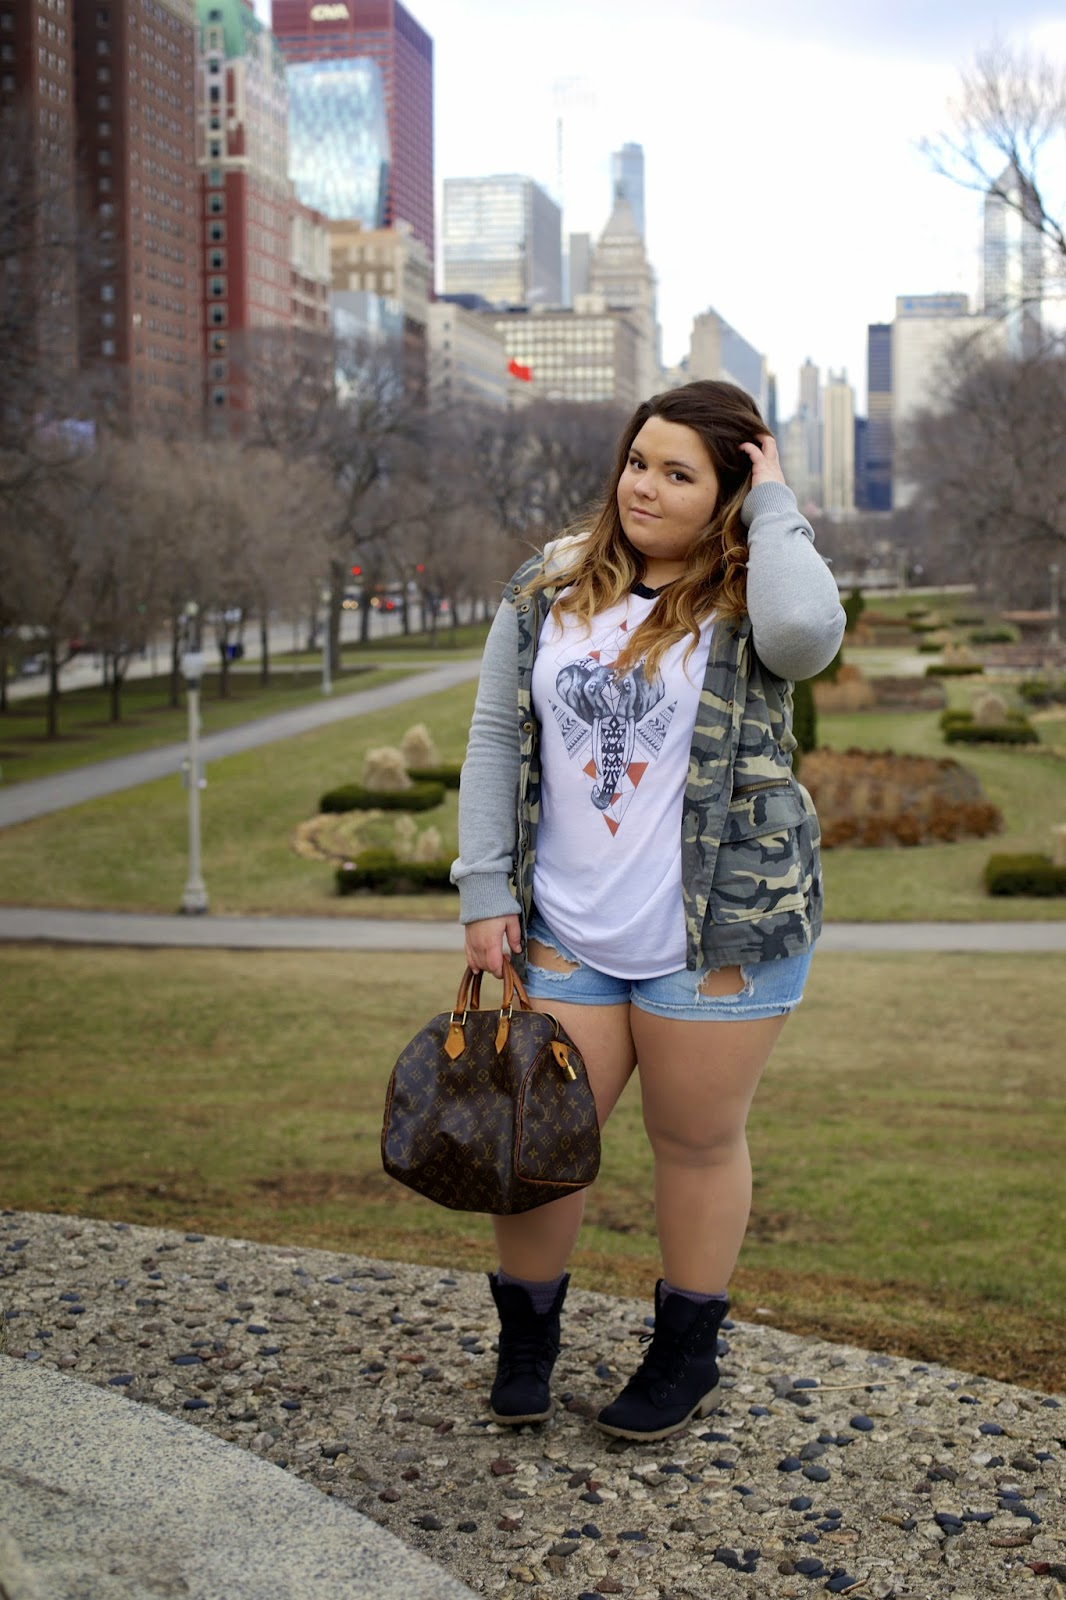 fatshion, fashion blogger, fat girl fashion, ankle boots with socks, chicago style, casual but stylish, How to rock a T-shirt, ripped shorts, destroyed denim, curvy girls, plus size fashion blogger, thick girls, camouflage jacket, forever 21, black matte timberlands, natalie craig, natalie in the city, Kadi klothing